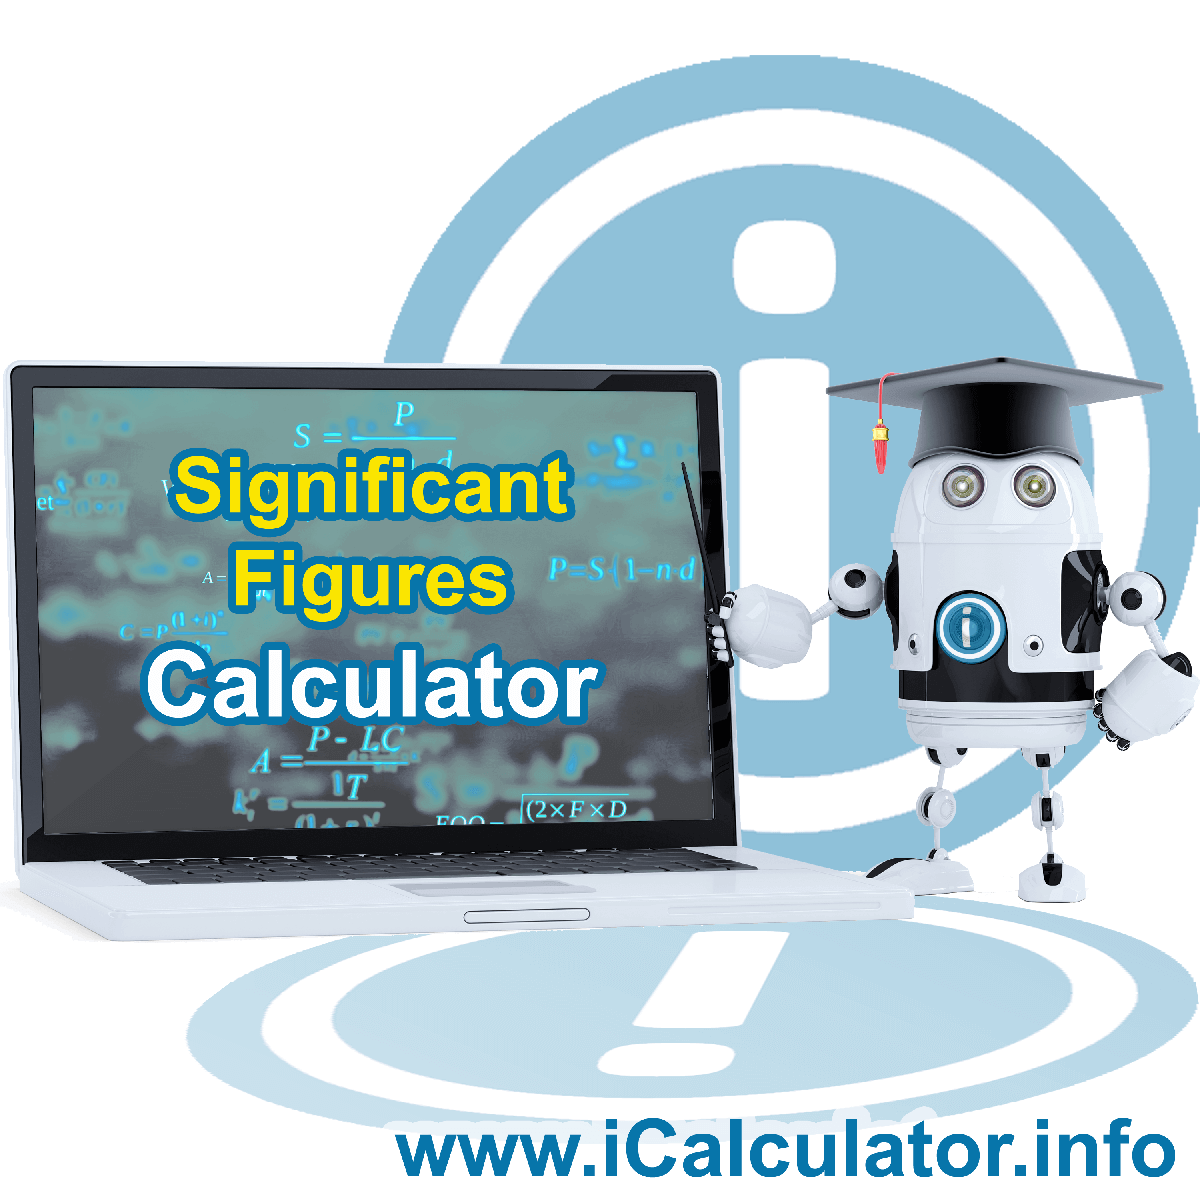 The Sig Fig Calculator by iCalculator, also known as a Significant Figure Calculator, is a good calculator for calculating a range of significant figures for math, physics, engineering, chemistry, and advanced math functions. A good online calculator with supporting significant figures formula and guide to significant figures.